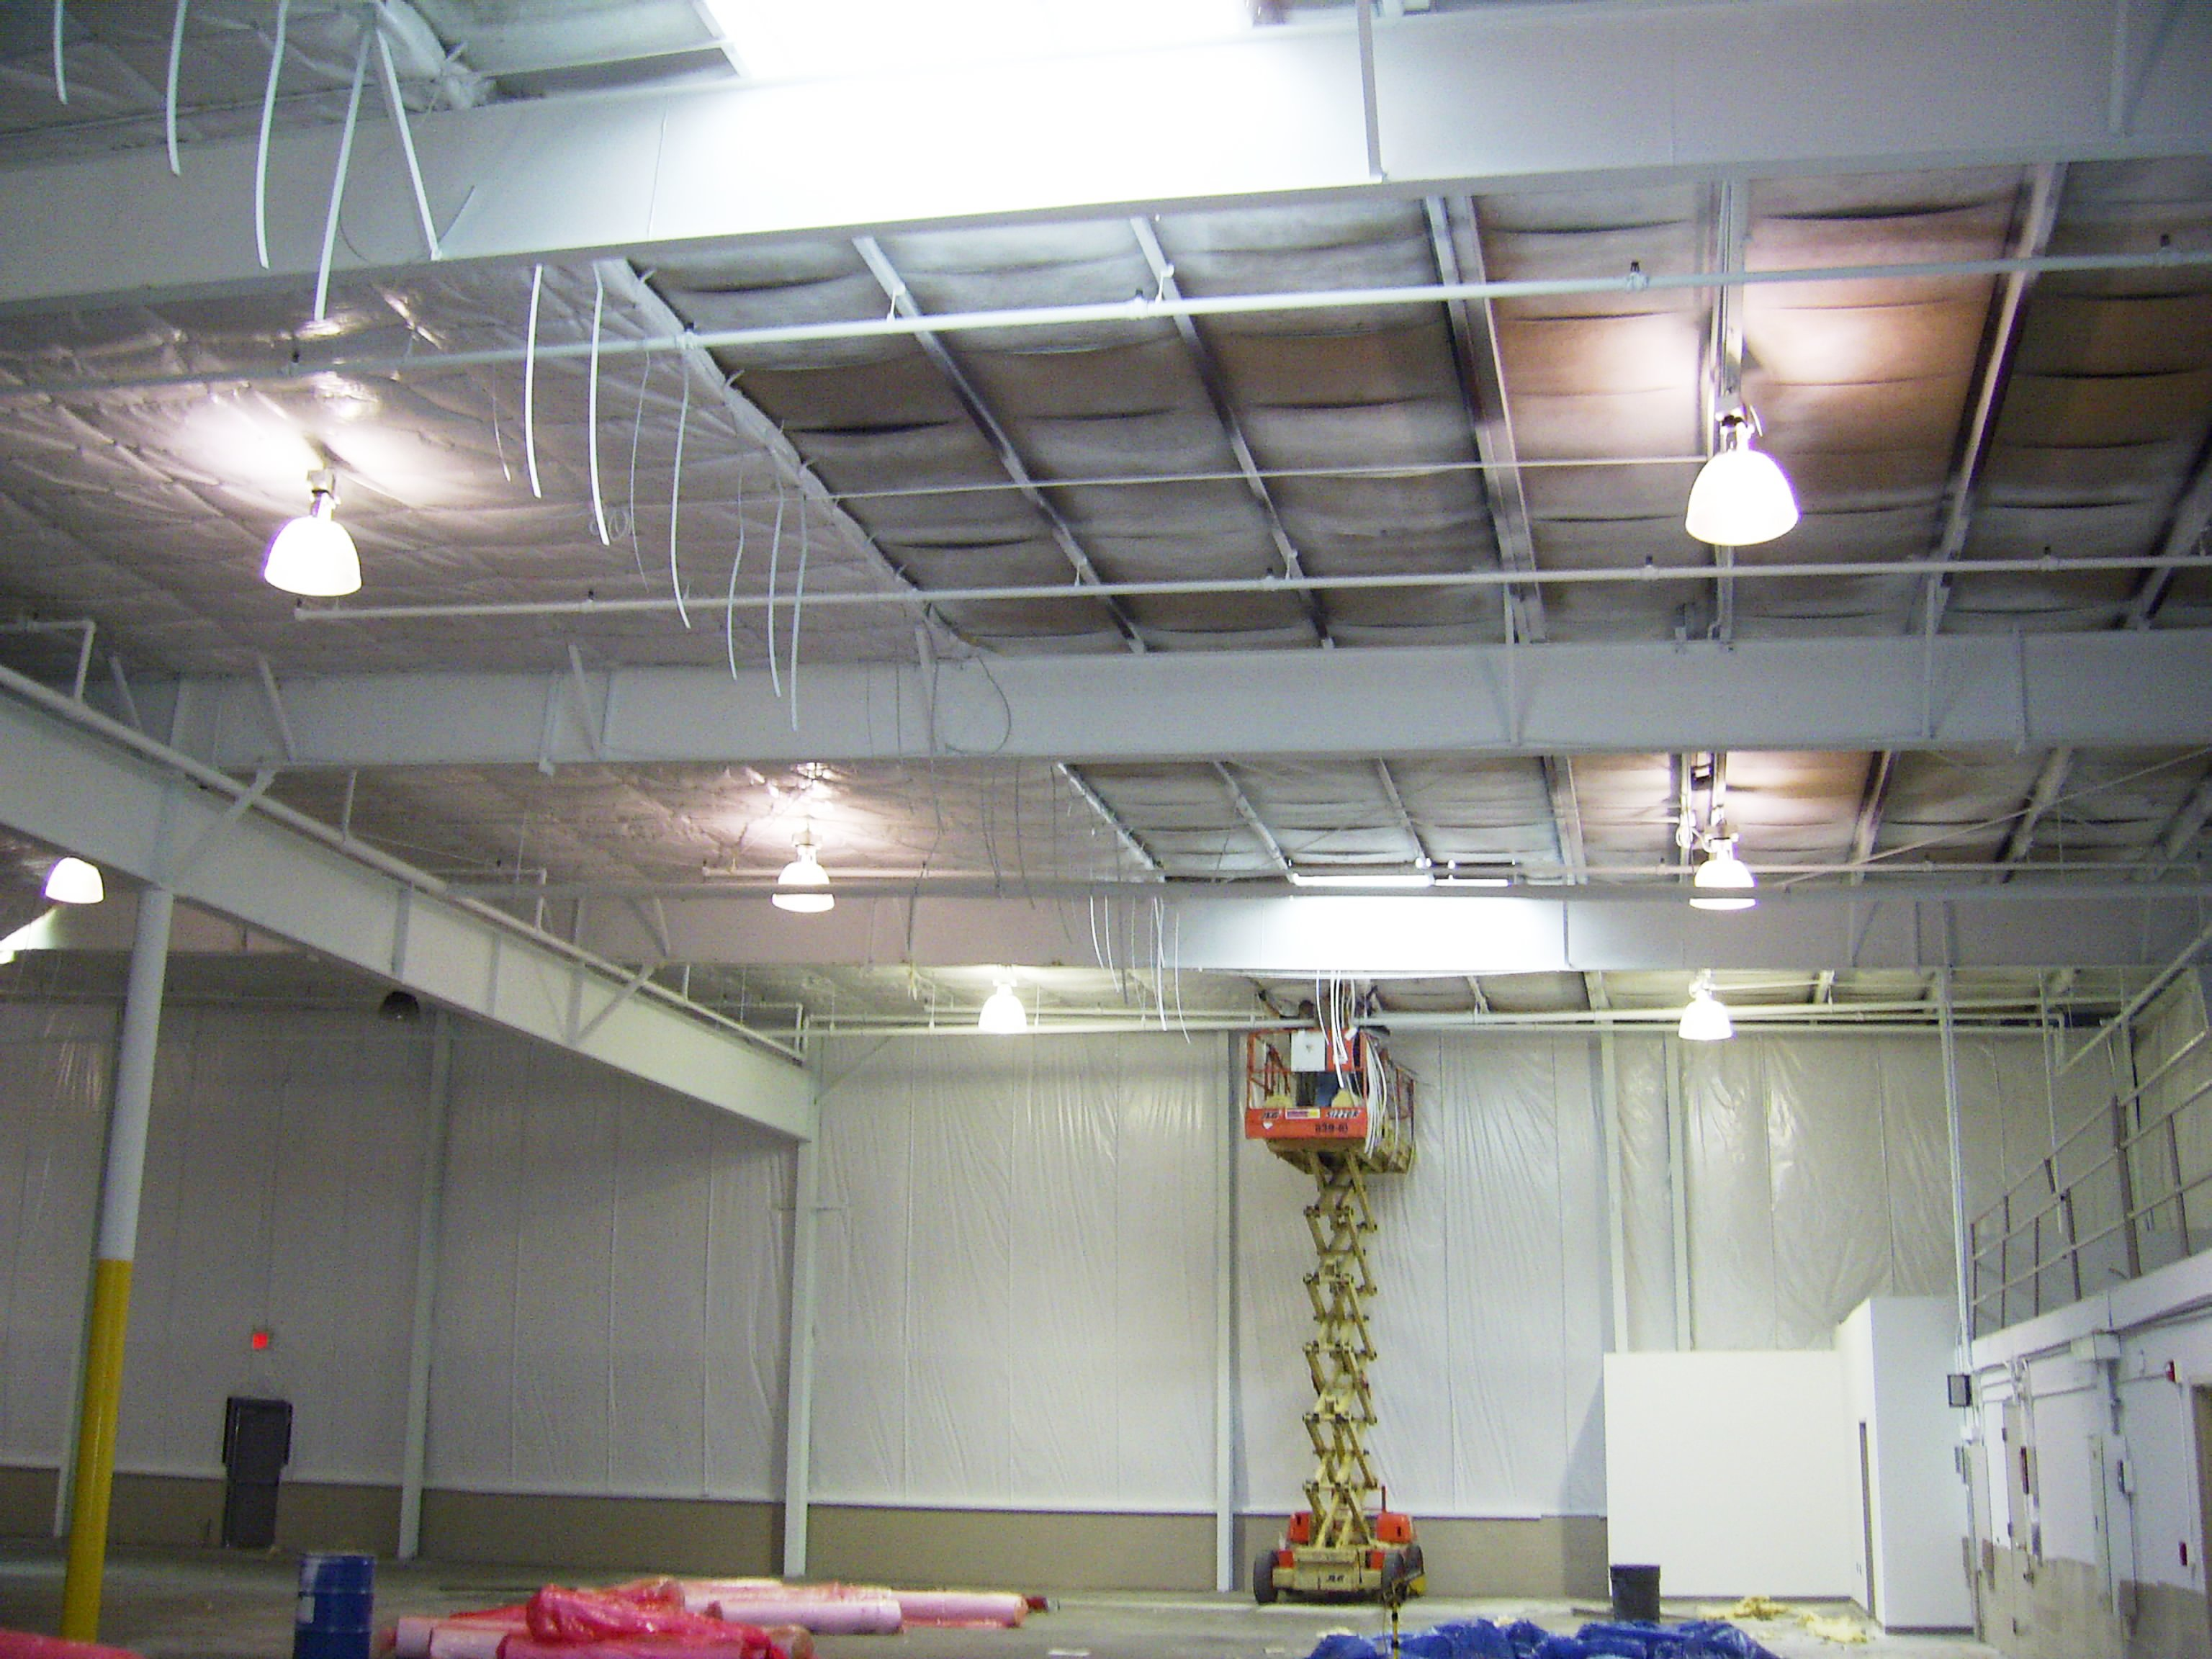 First Industrial 120,000 sq.ft R-16 Strap Insulation System and R-16 Blanket Wall Insulation System